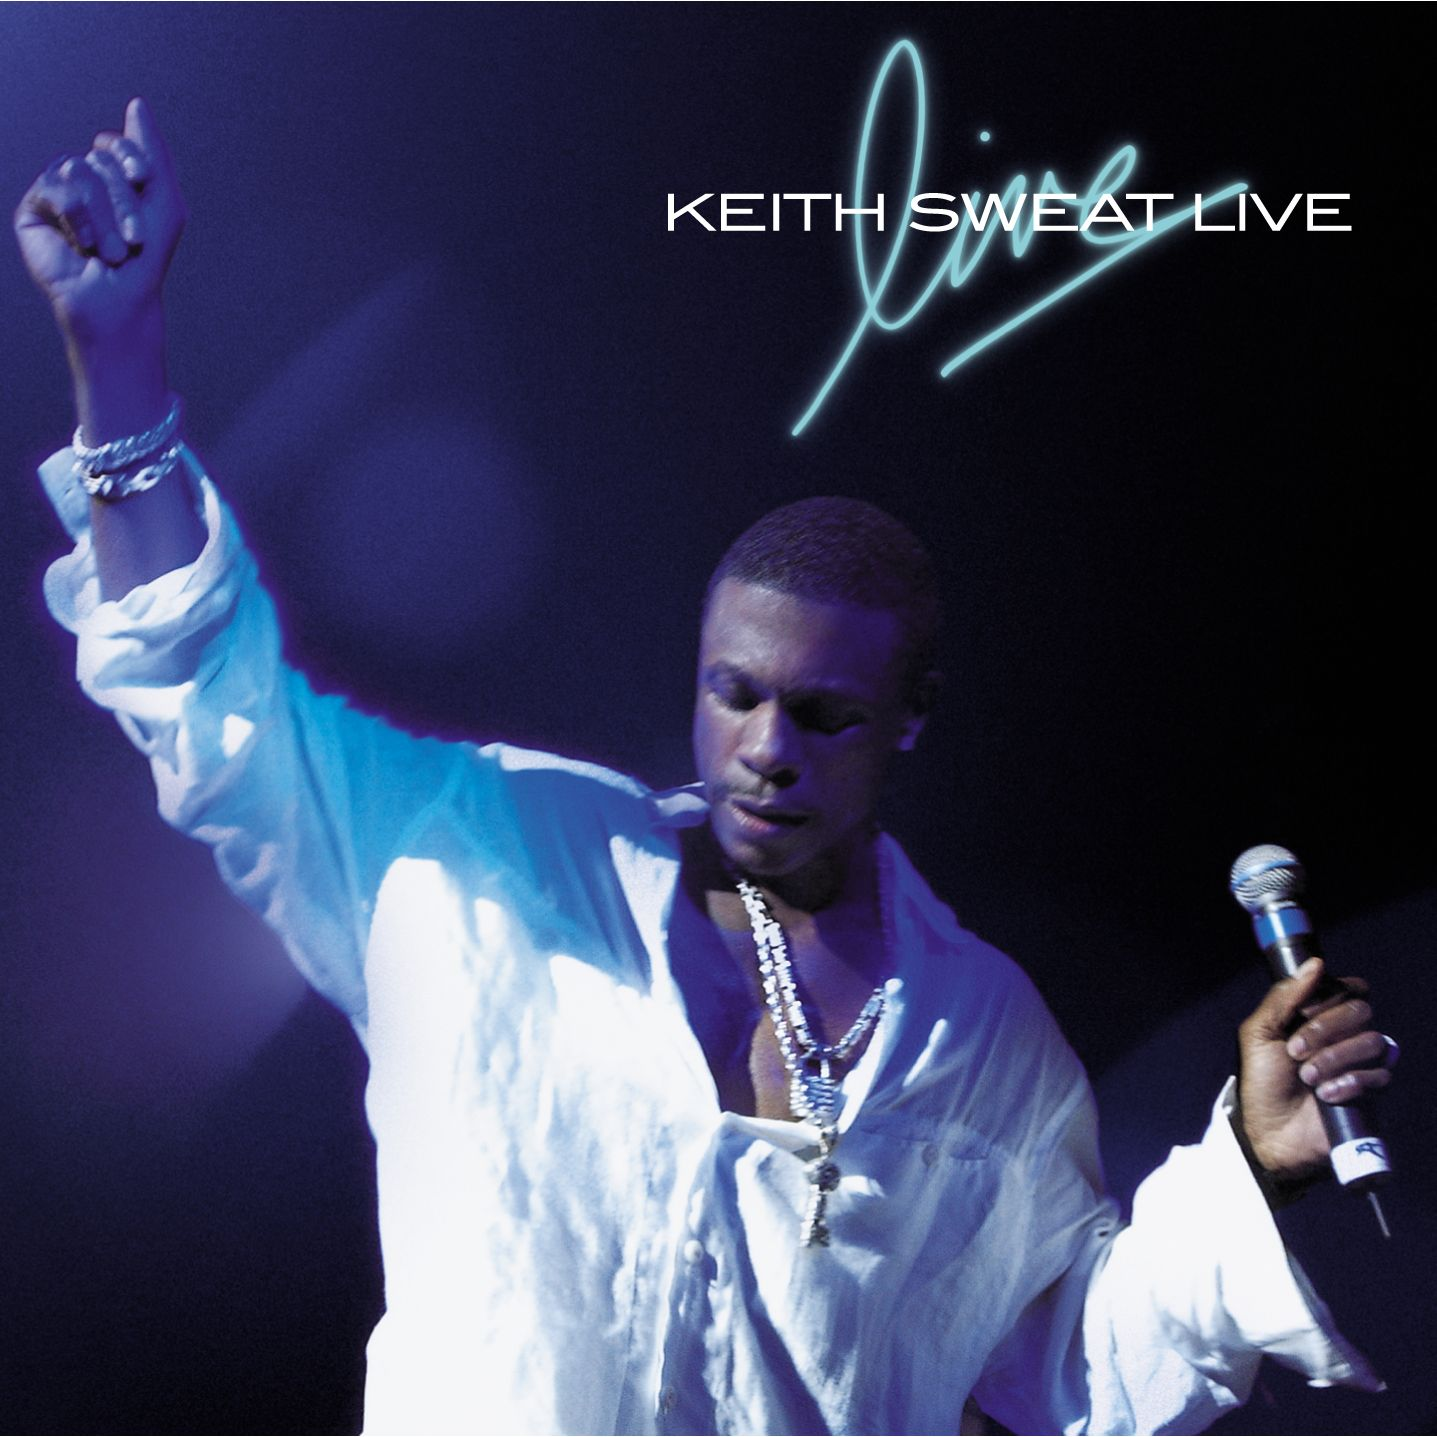 Gerald Levert Songs with regard to listen free to keith sweat - my body (feat. gerald levert & johnny